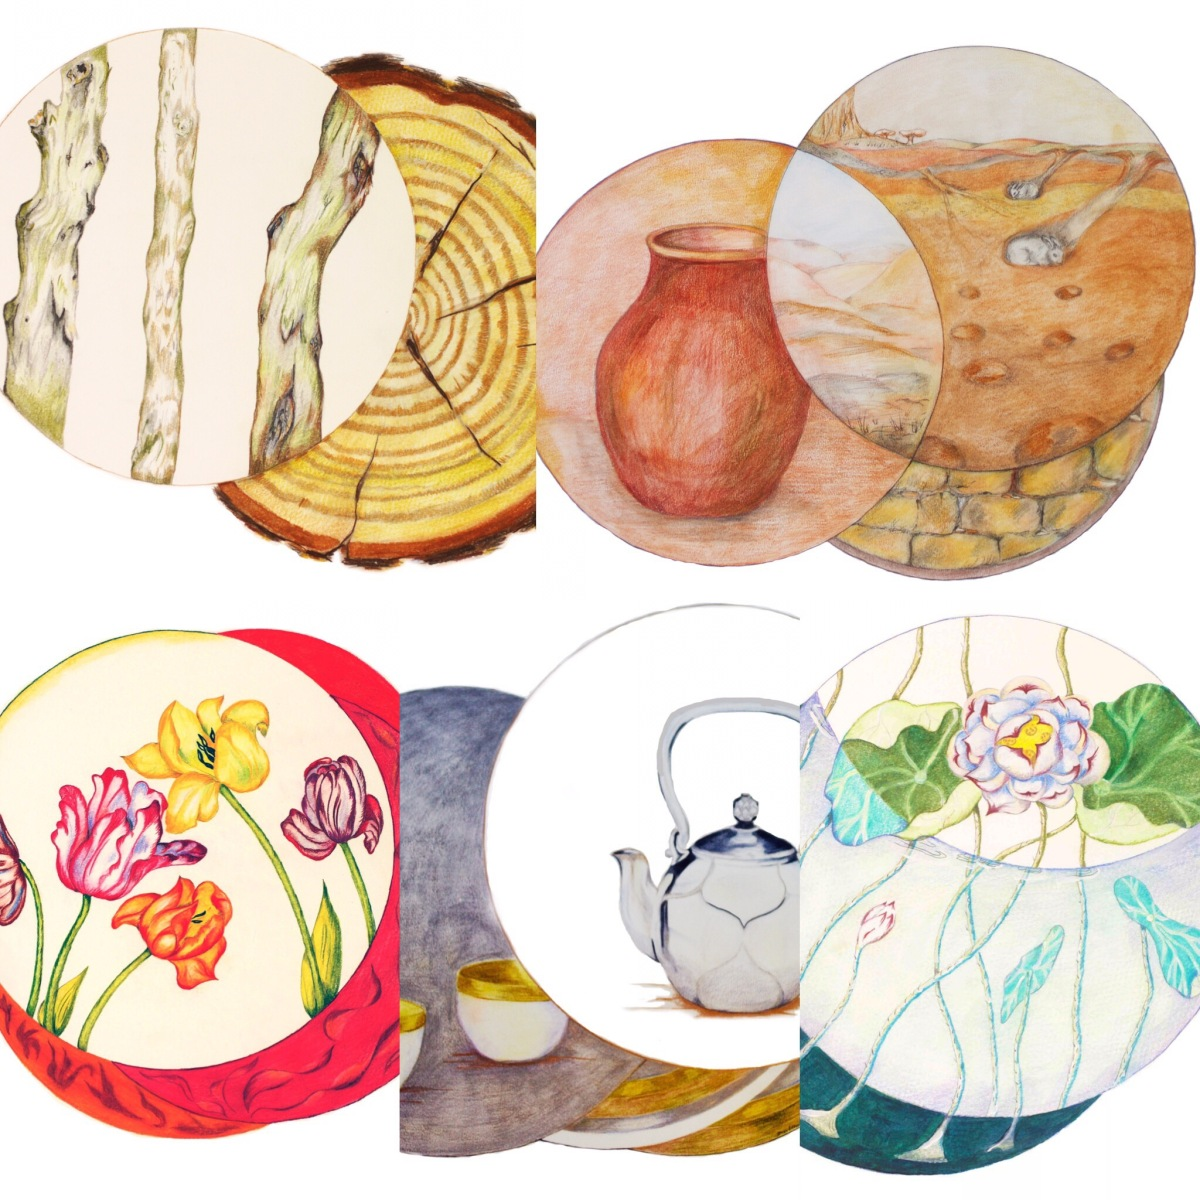 Feng Shui Elements artistically interpreted by Paula Kuitenbrouwer